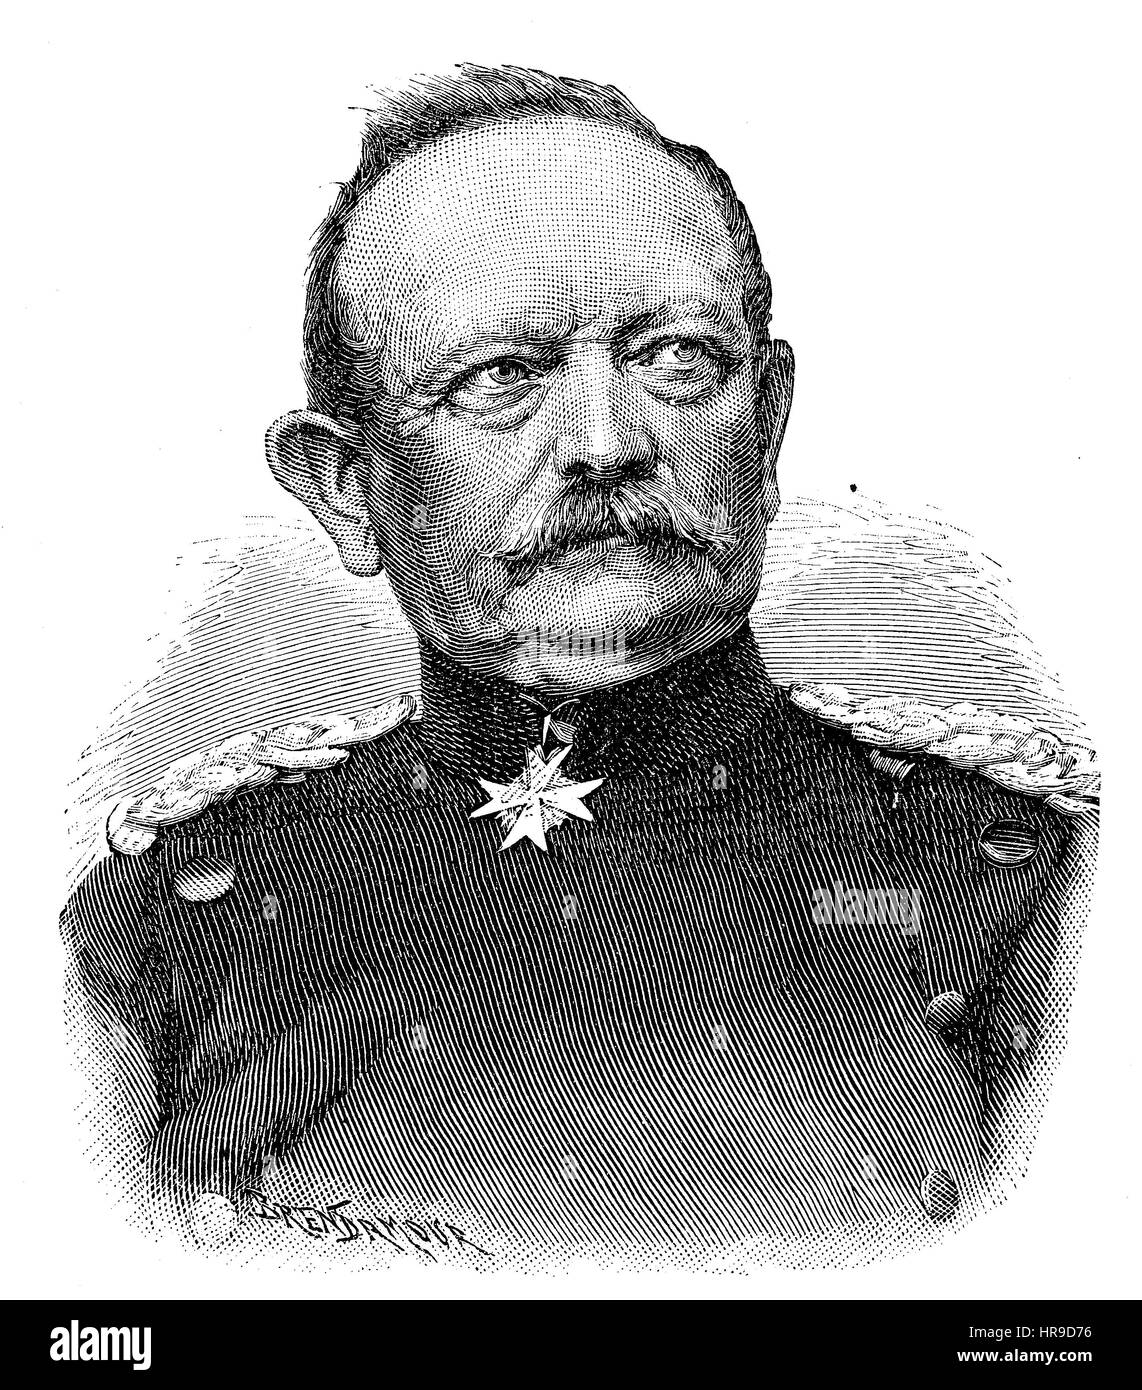 Eduard Friedrich Karl von Fransecky, 1807 - 1890, was Prussian general who served in the Austro-Prussian War and - Stock Image